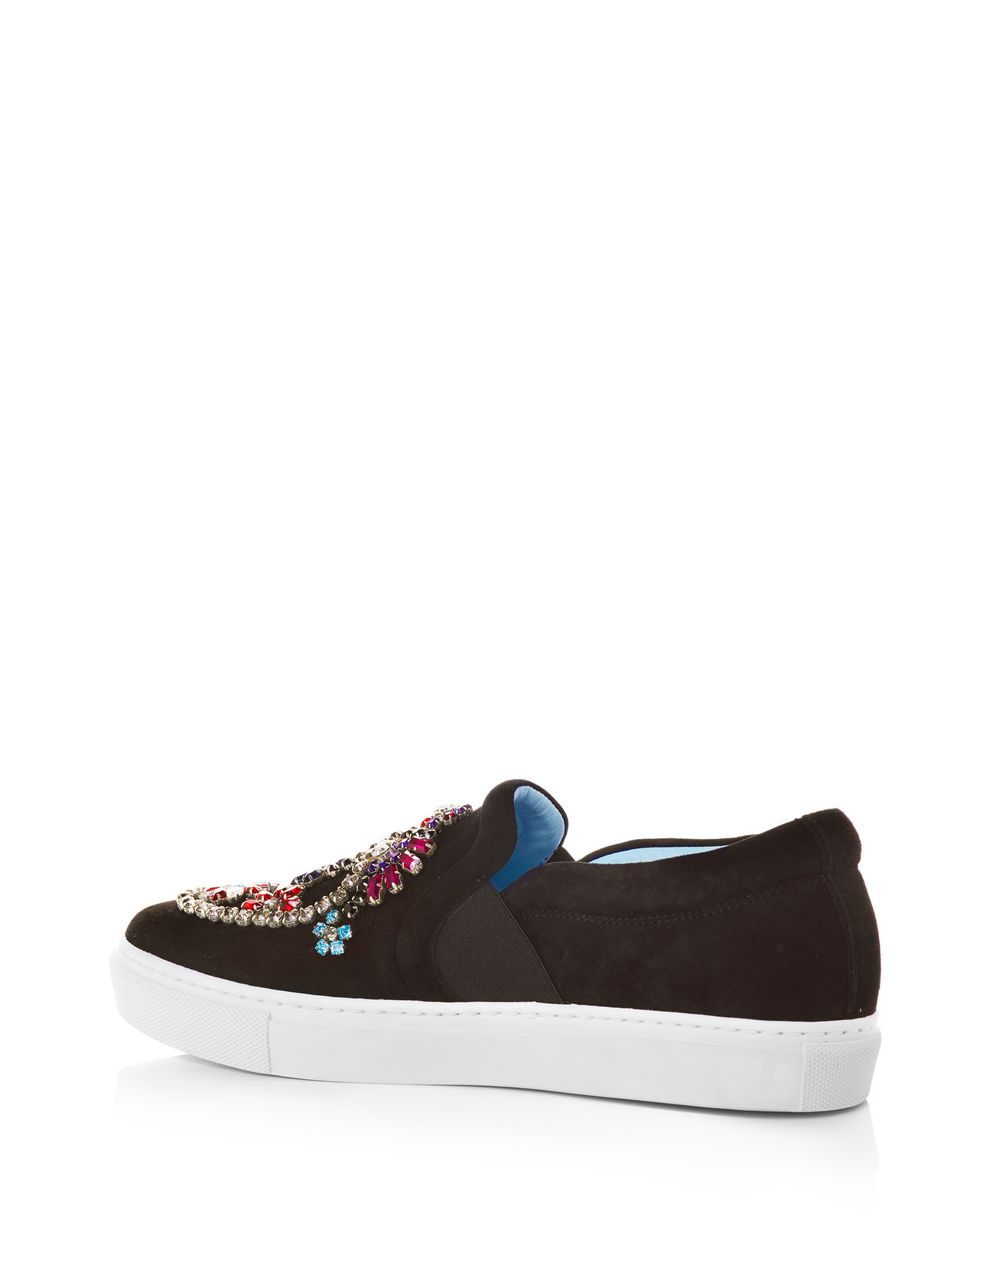 EMBROIDERED SLIP-ON SNEAKER  - Lanvin